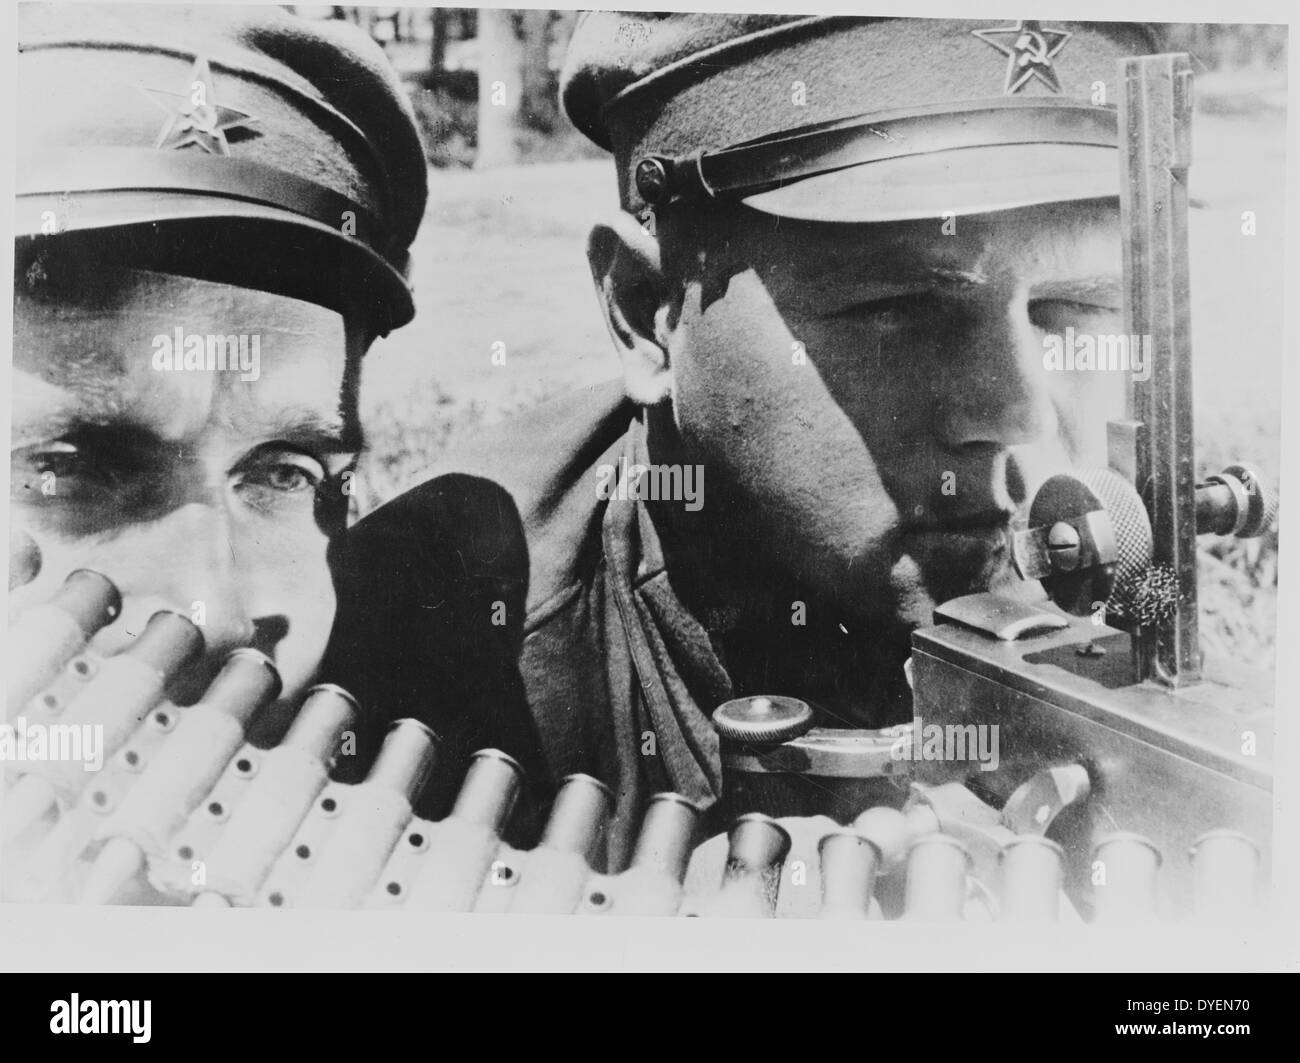 Machine gunners of the far eastern Red Army in the USSR - Stock Image